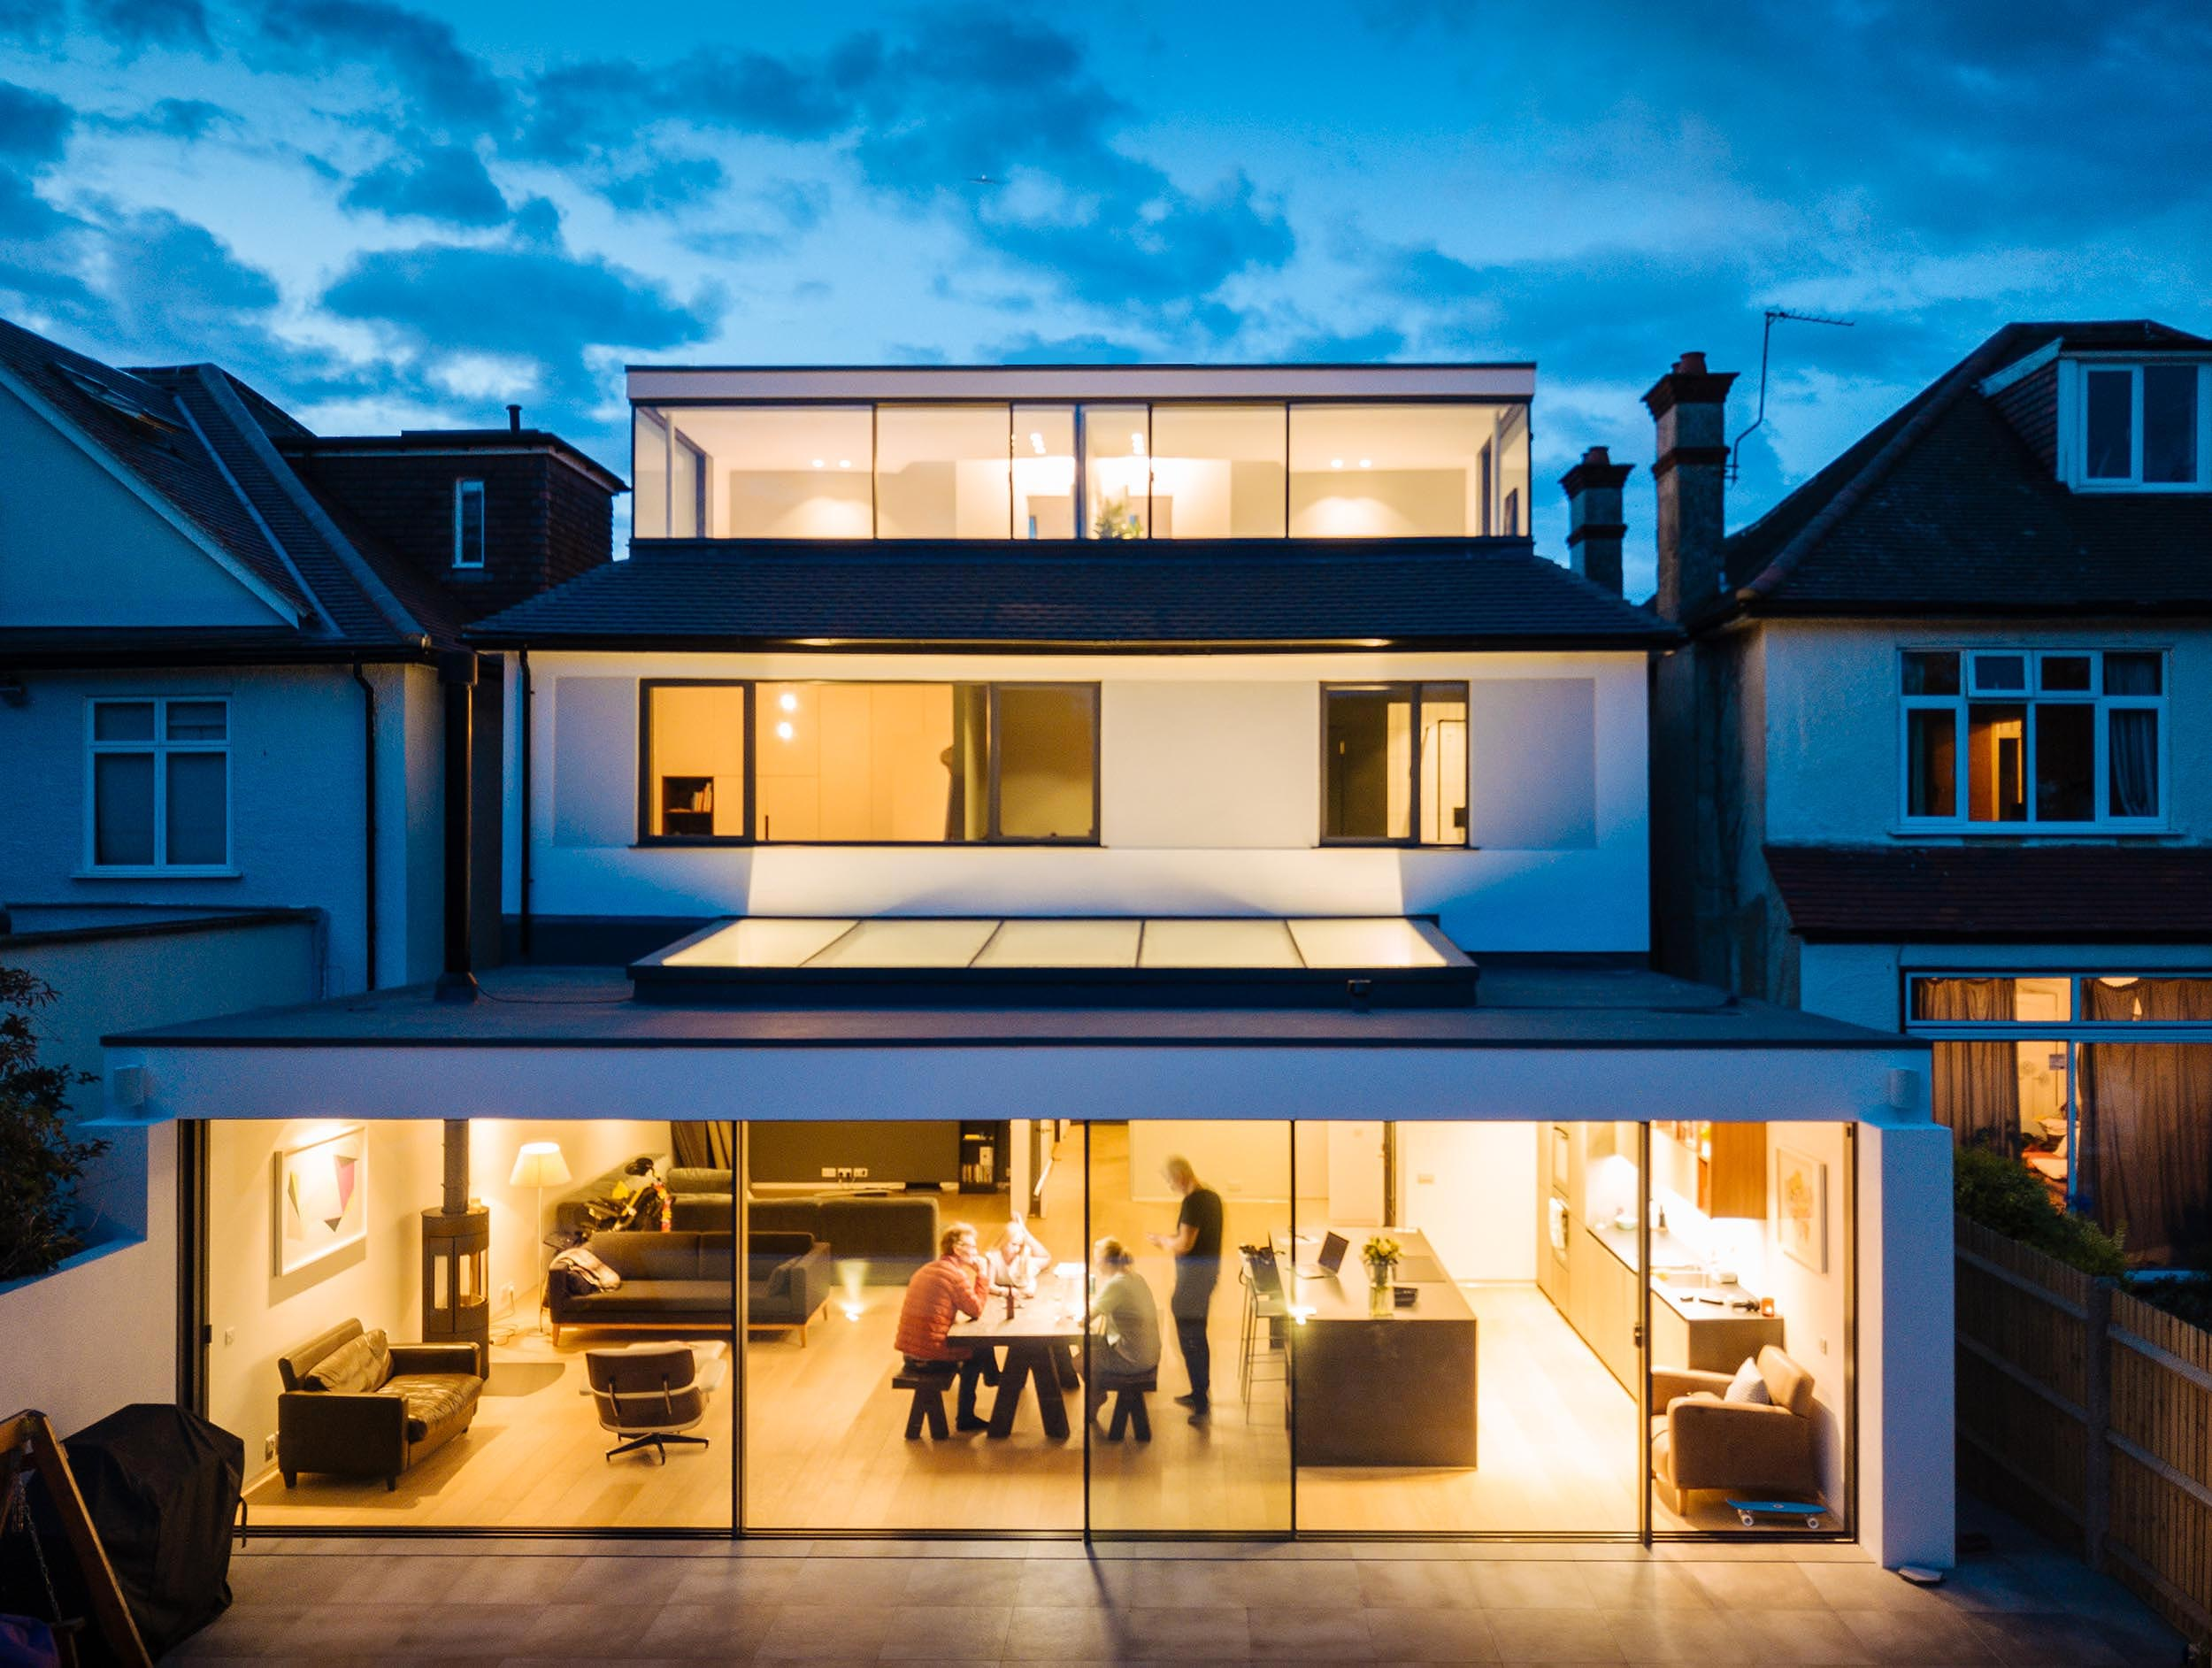 dusk-kitchen-extension-architect-house-aerial-view